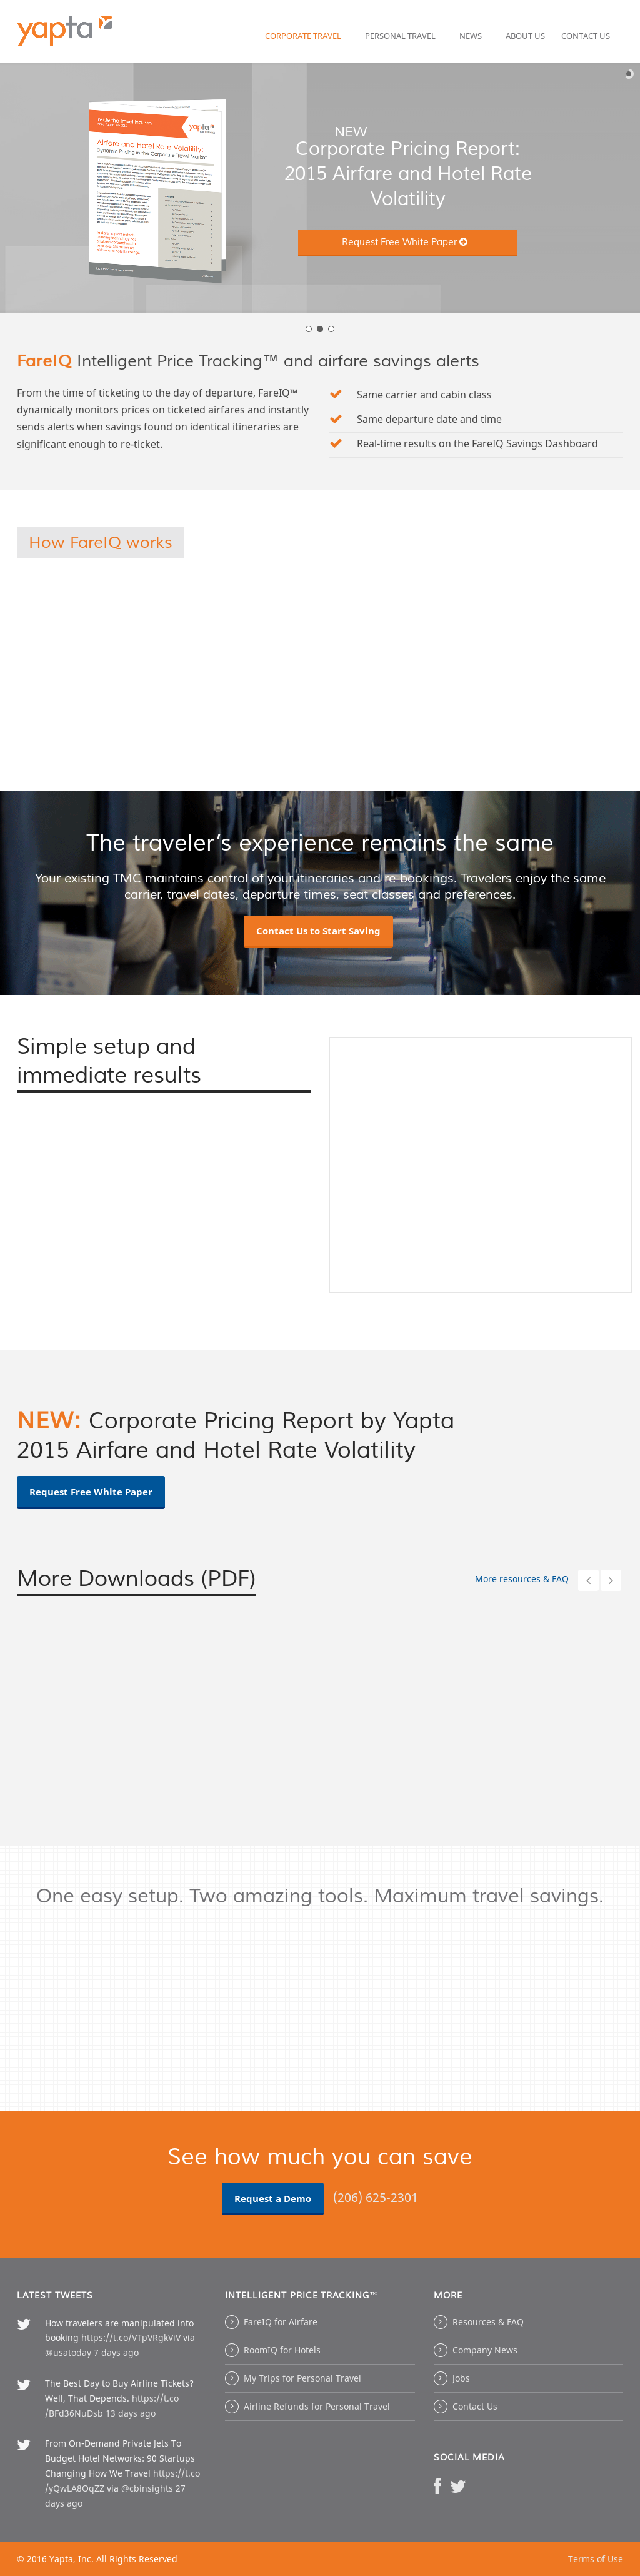 Yapta Competitors, Revenue and Employees - Owler Company Profile